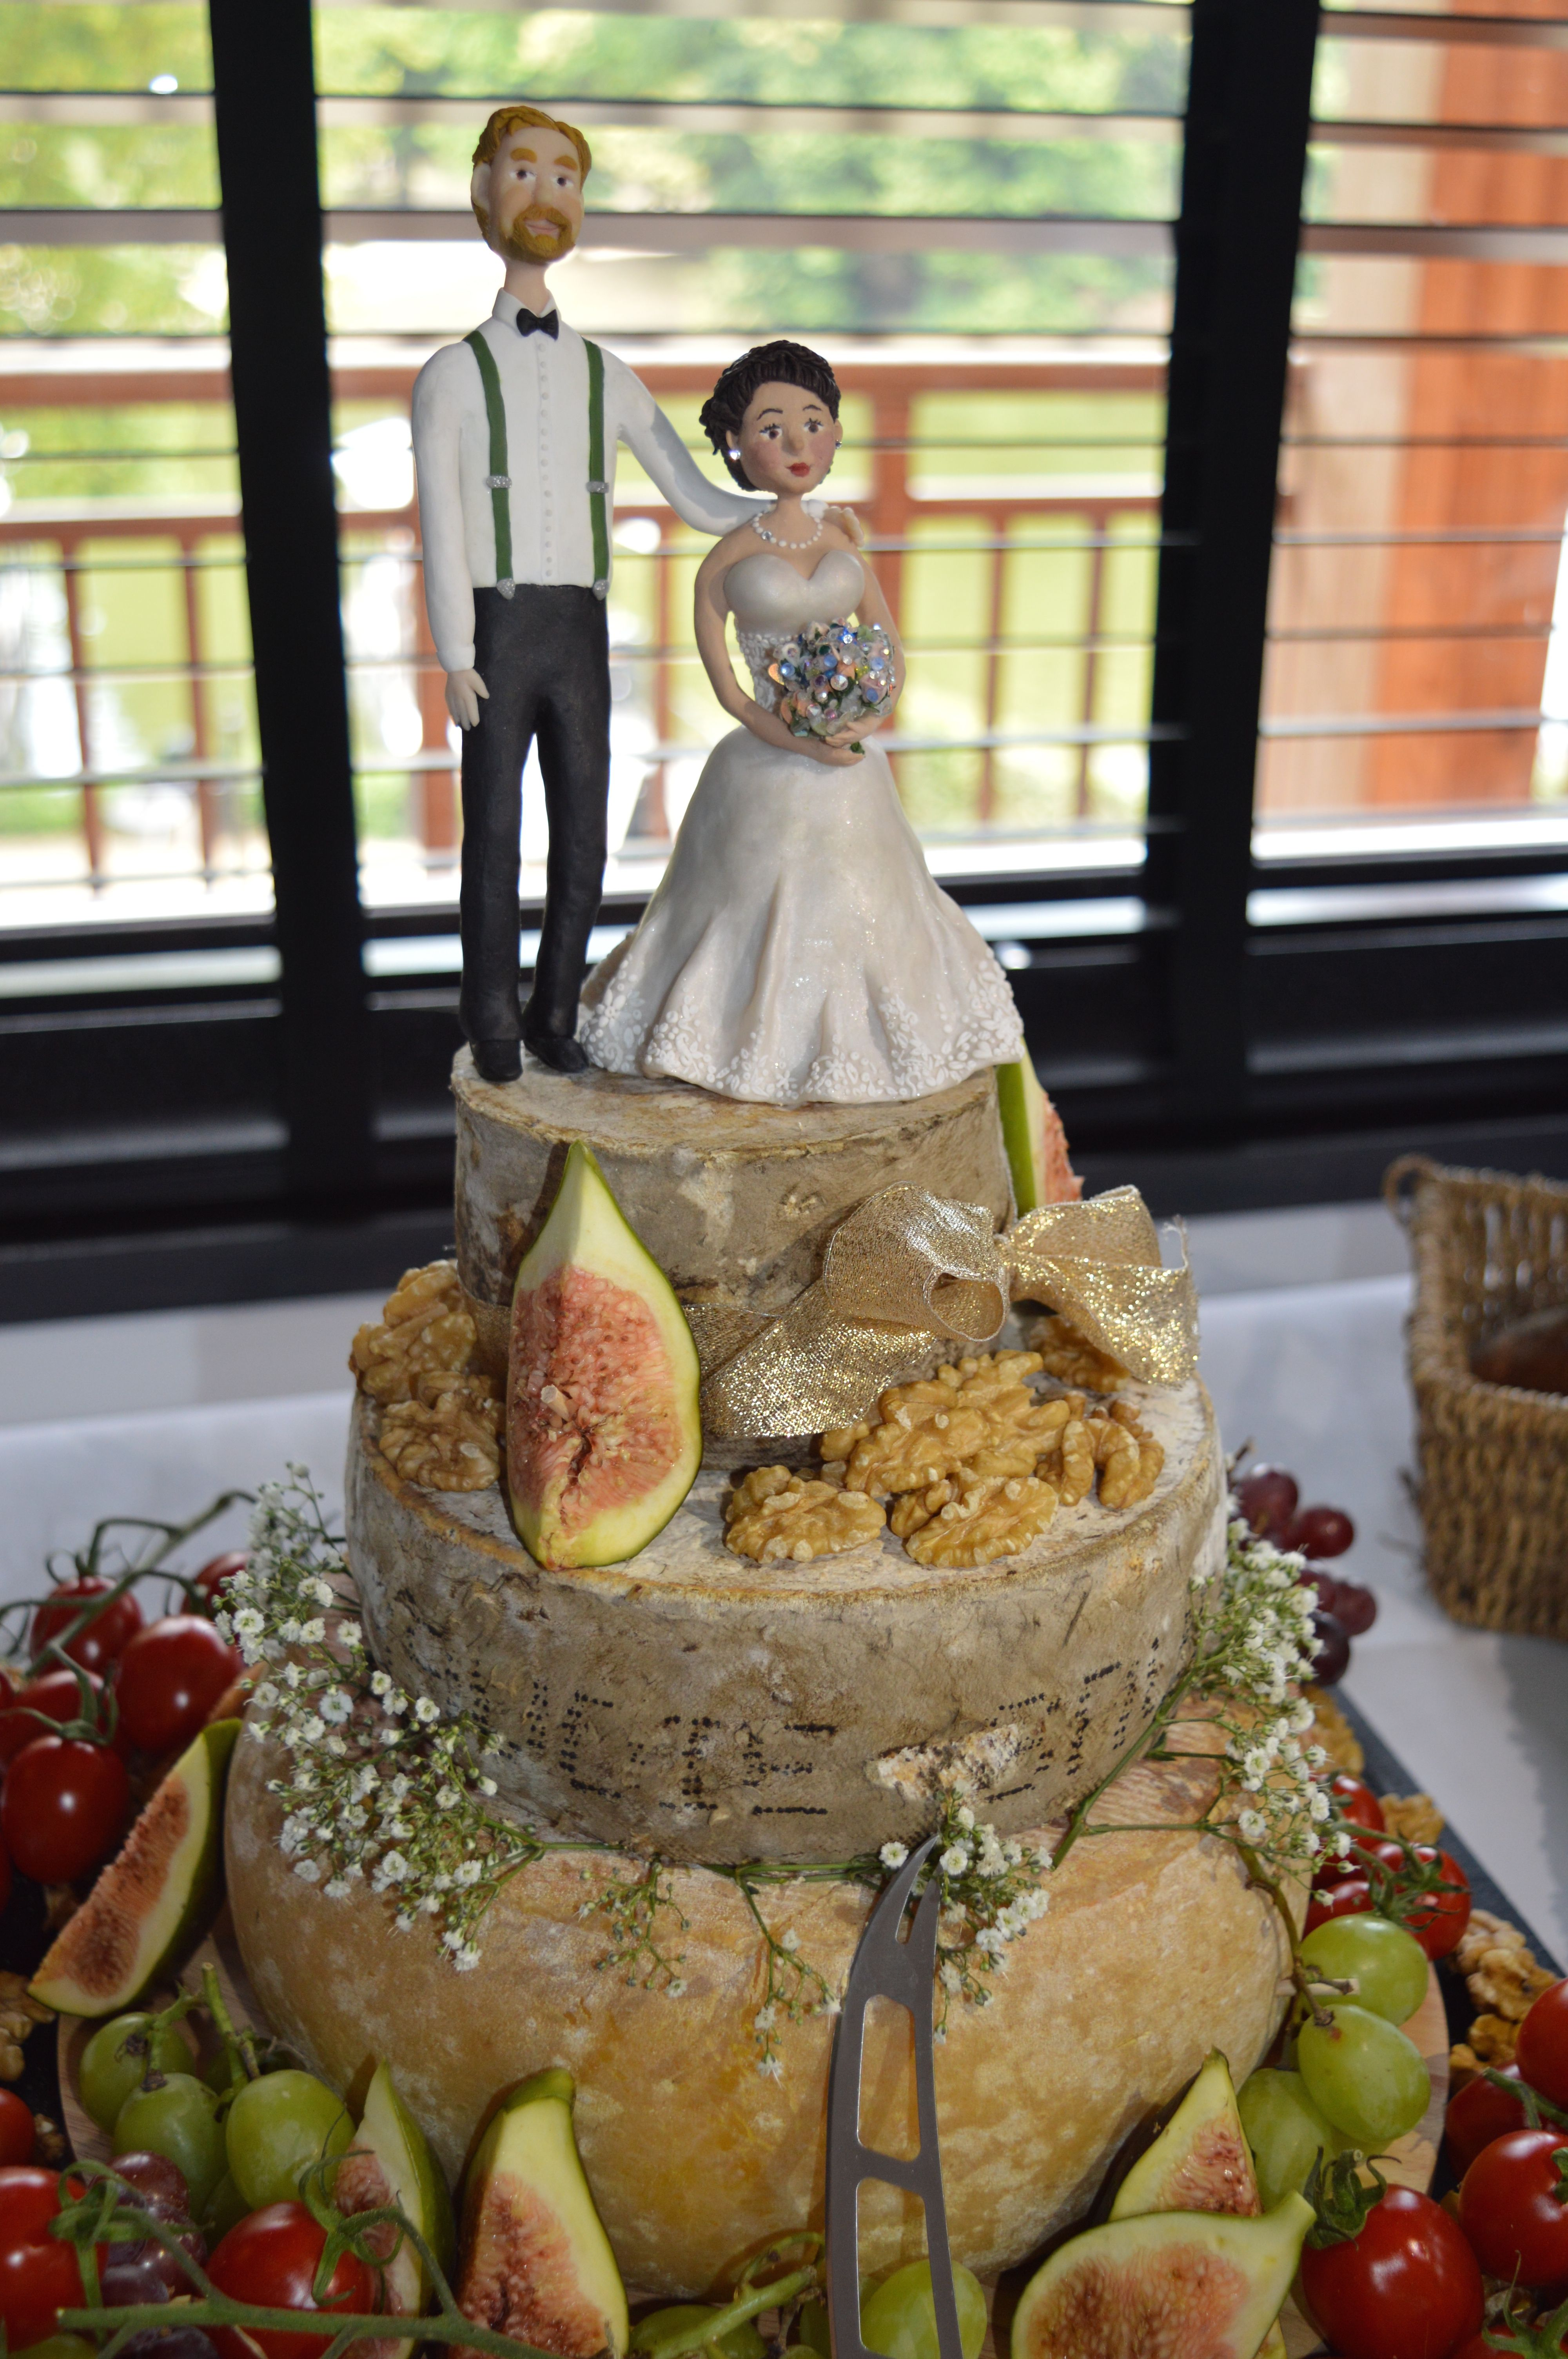 Cheese Wheel Wedding Cake From A Recent Norfolk Caterers Oystercatchercatering